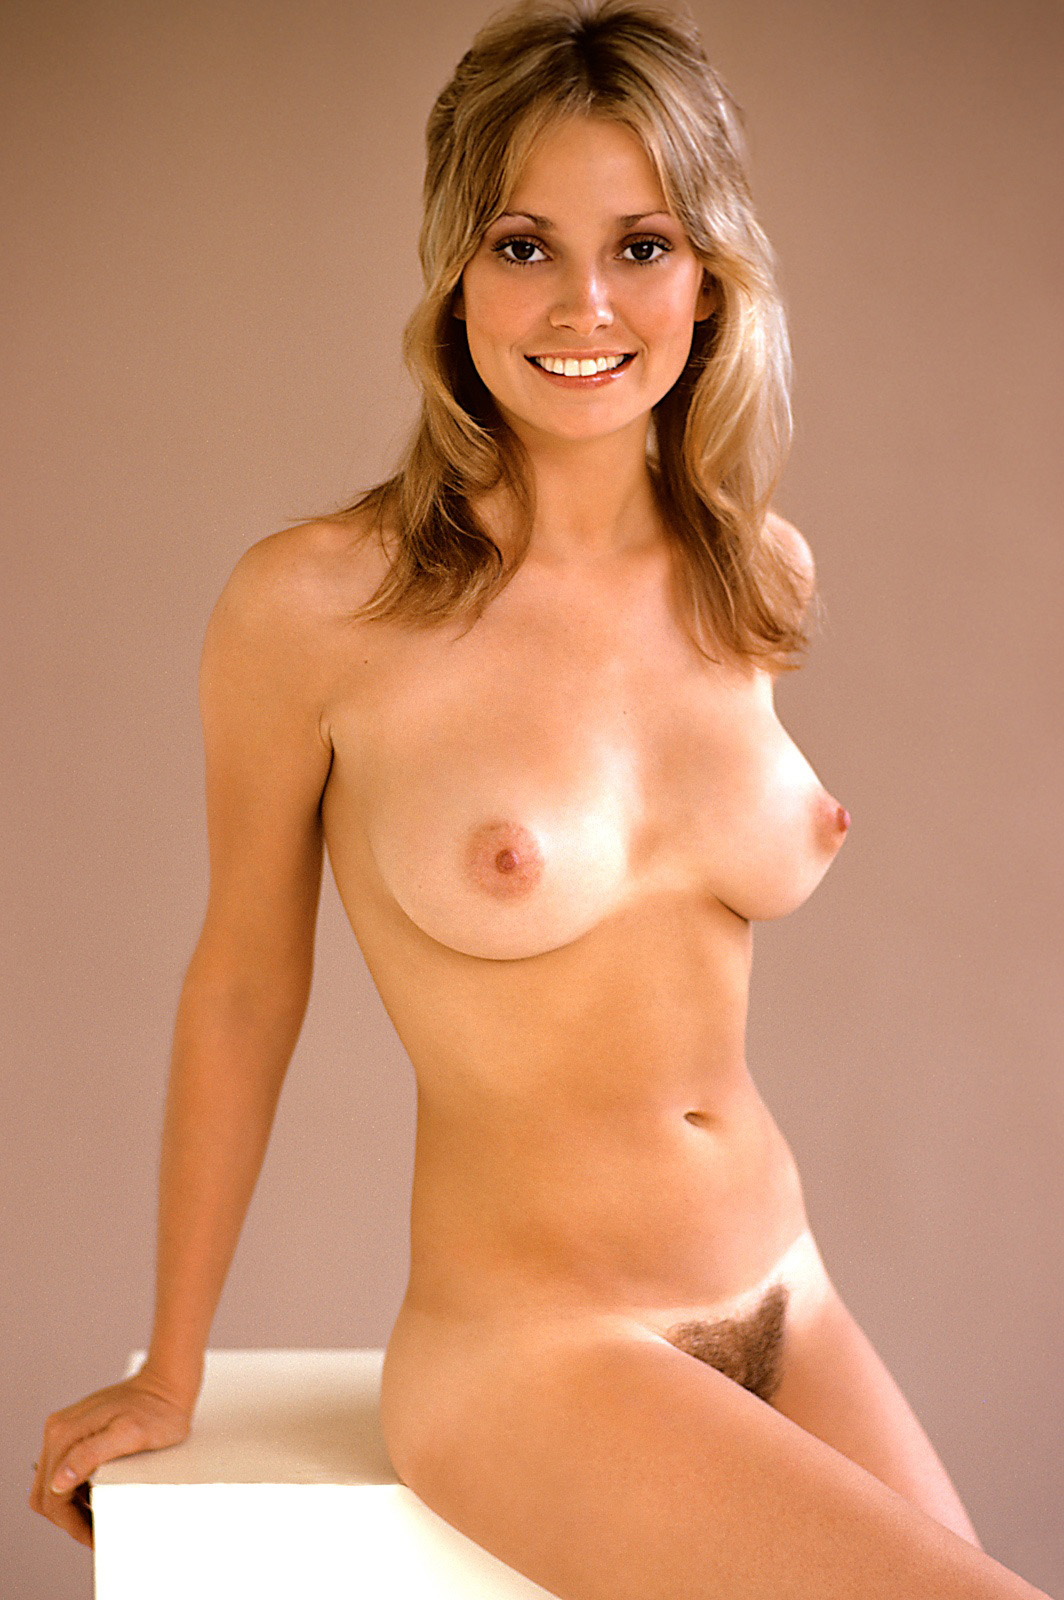 Cyndi Wood Playboy Playmate Of The Year 1974 06.jpg